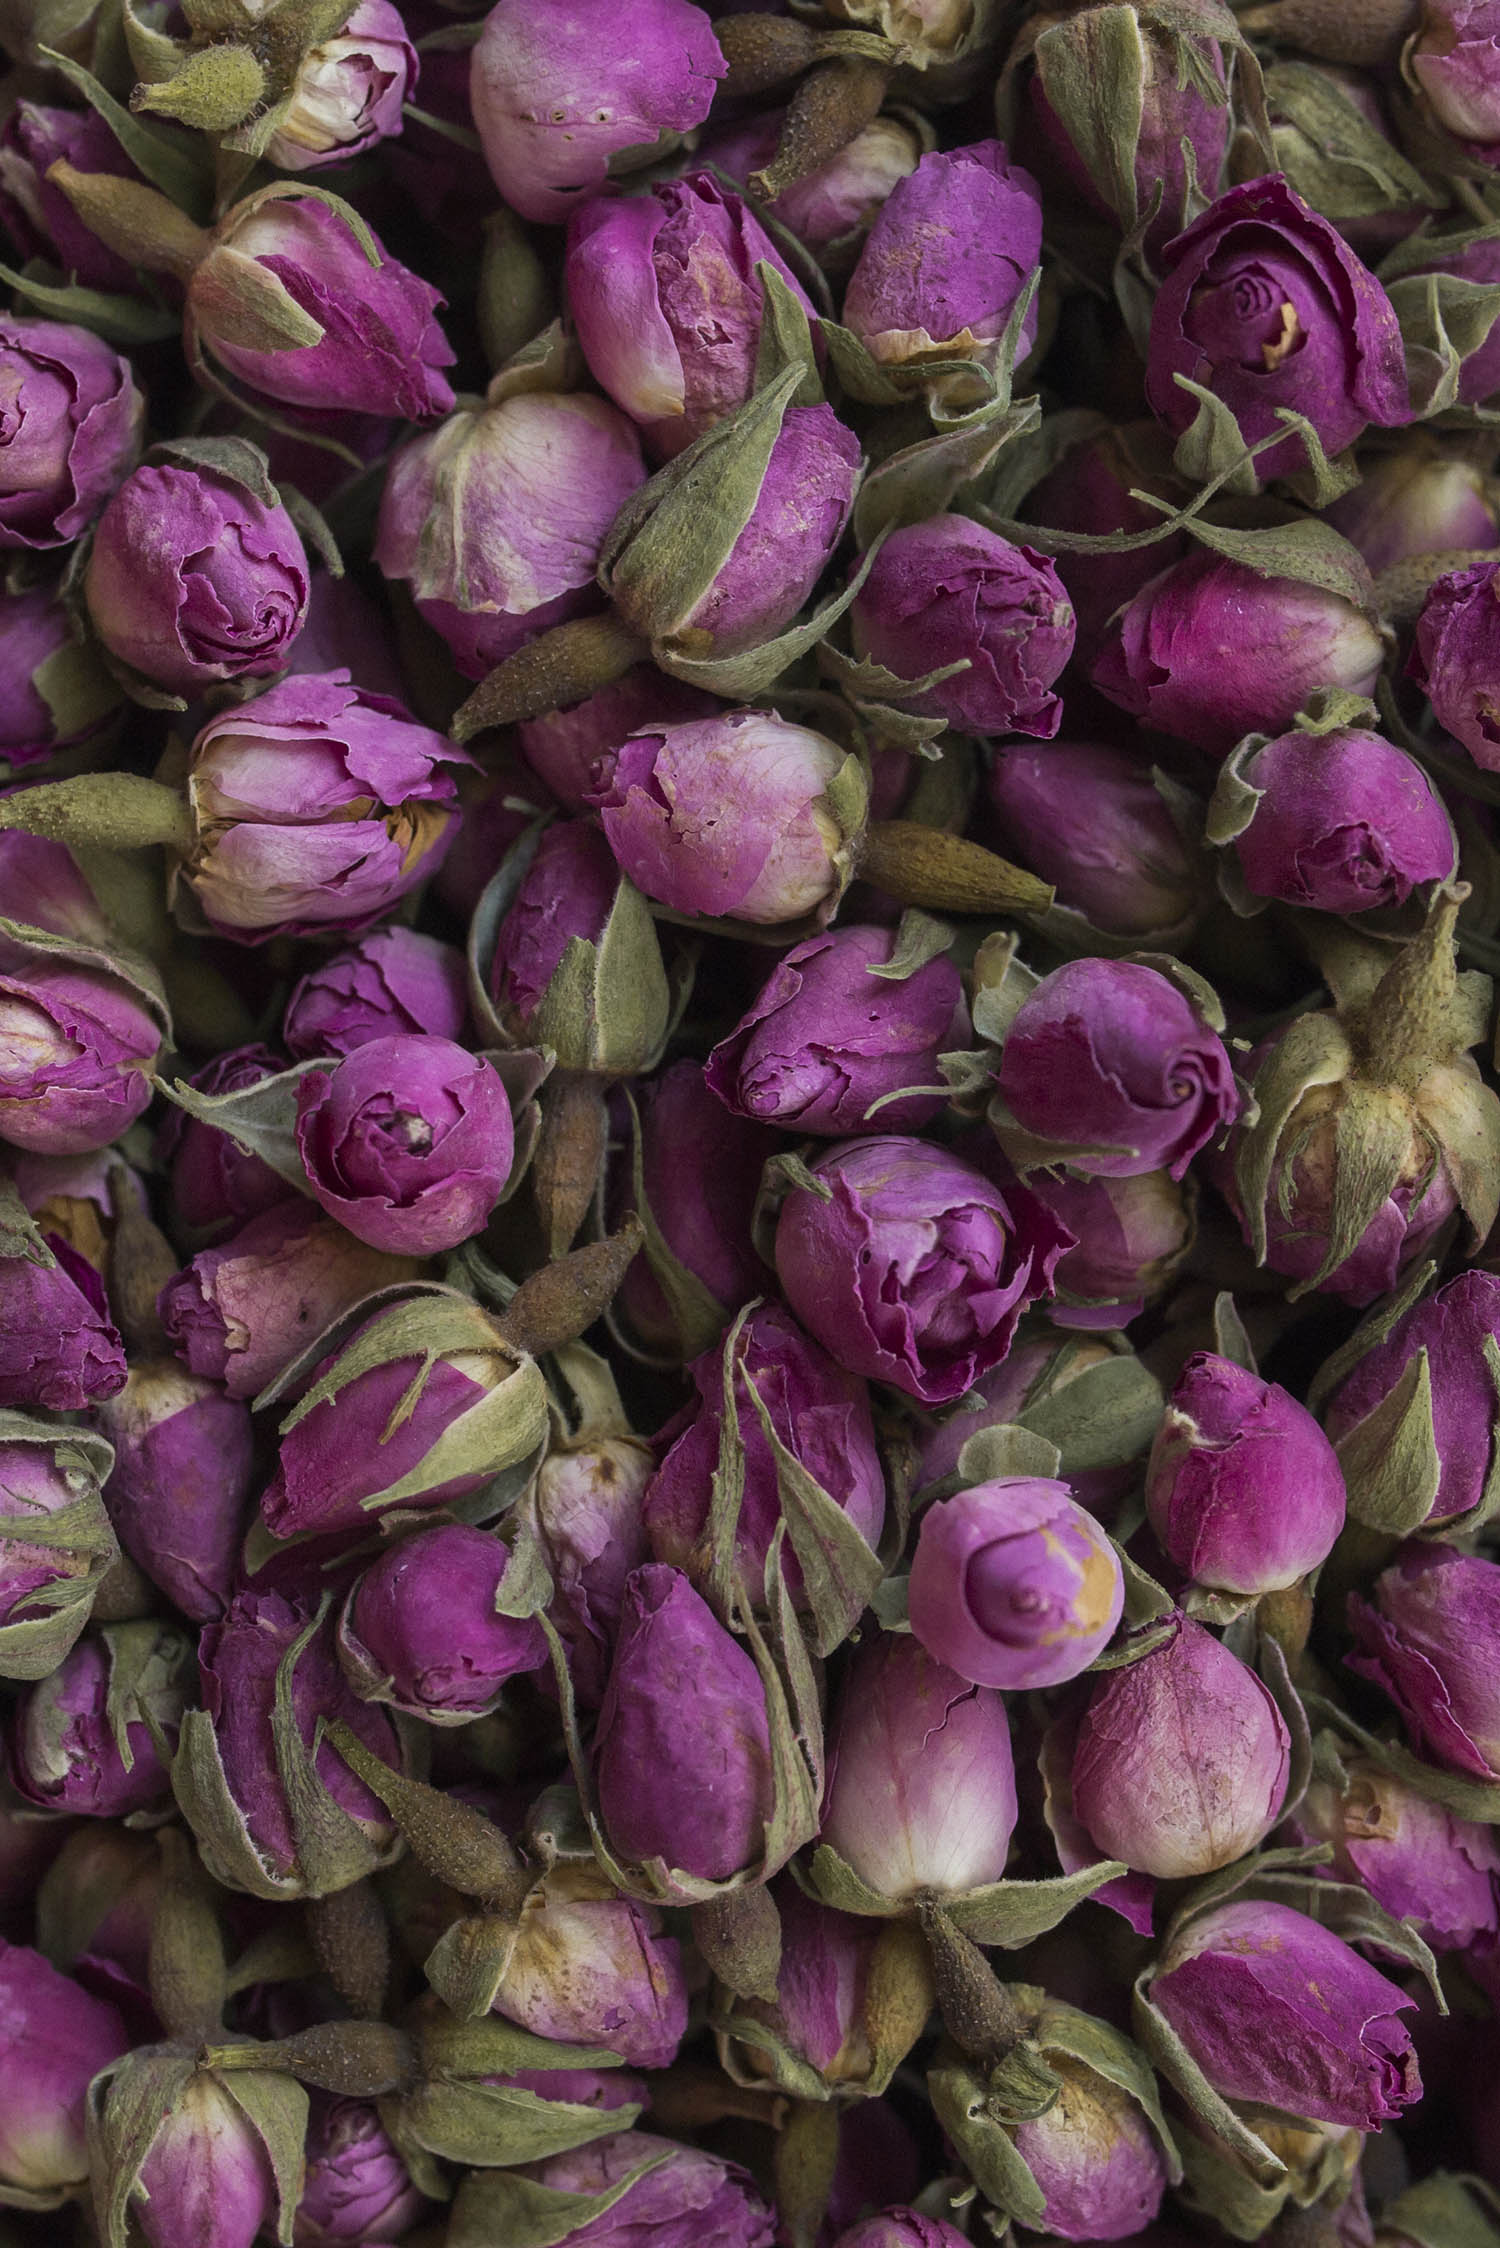 Persian pink rose buds